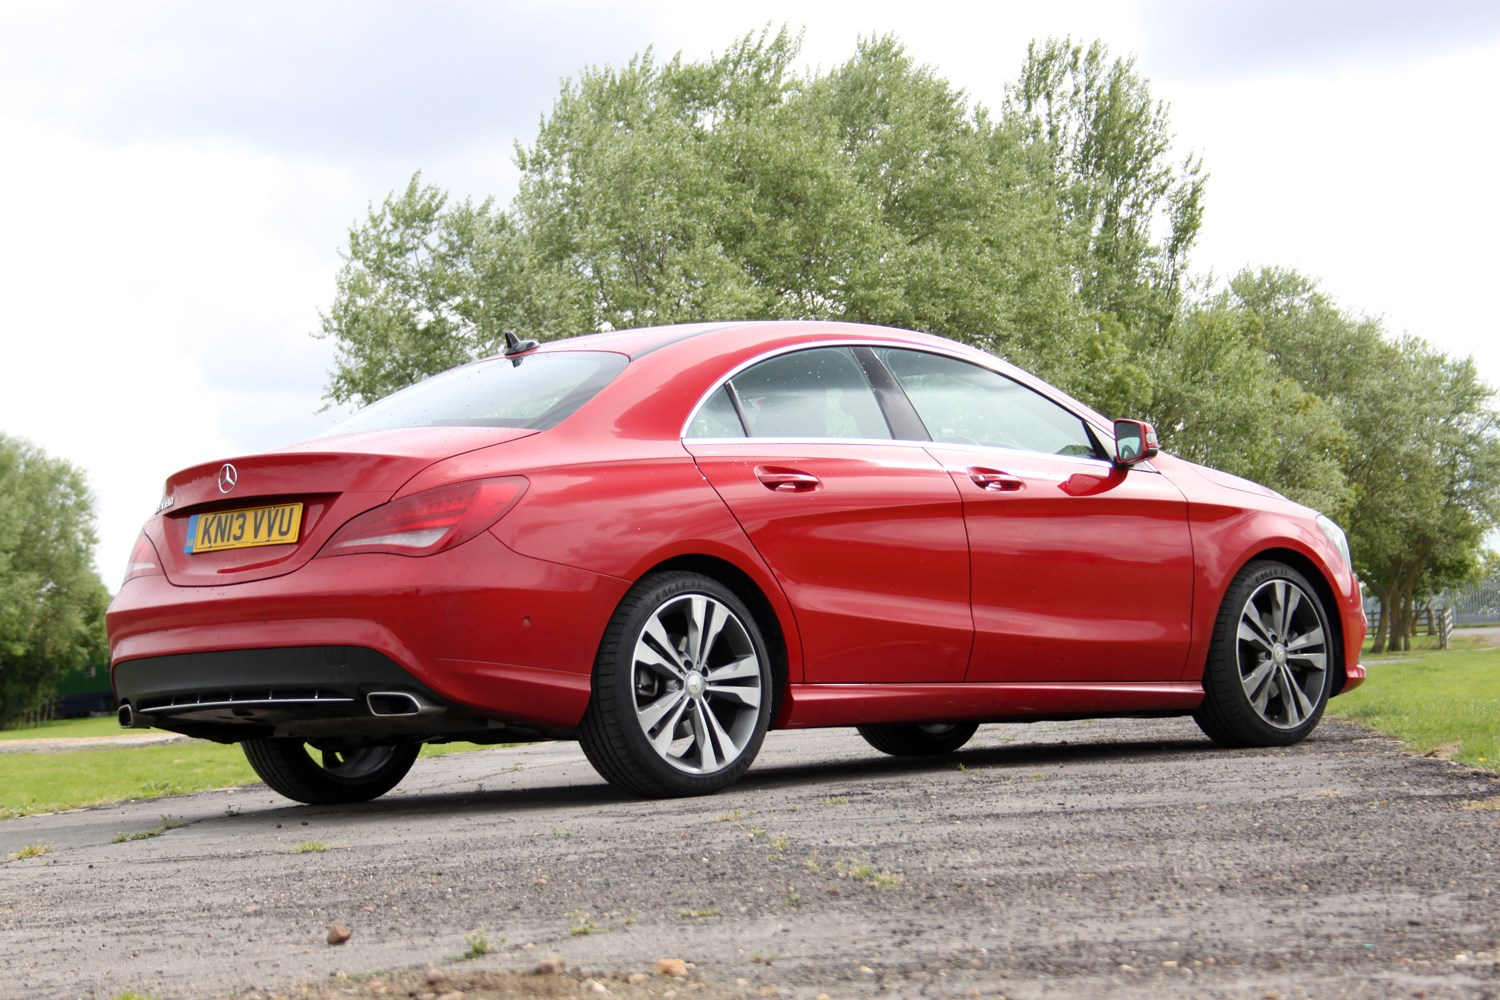 mercedes benz cla class coupe review 2013 parkers. Black Bedroom Furniture Sets. Home Design Ideas